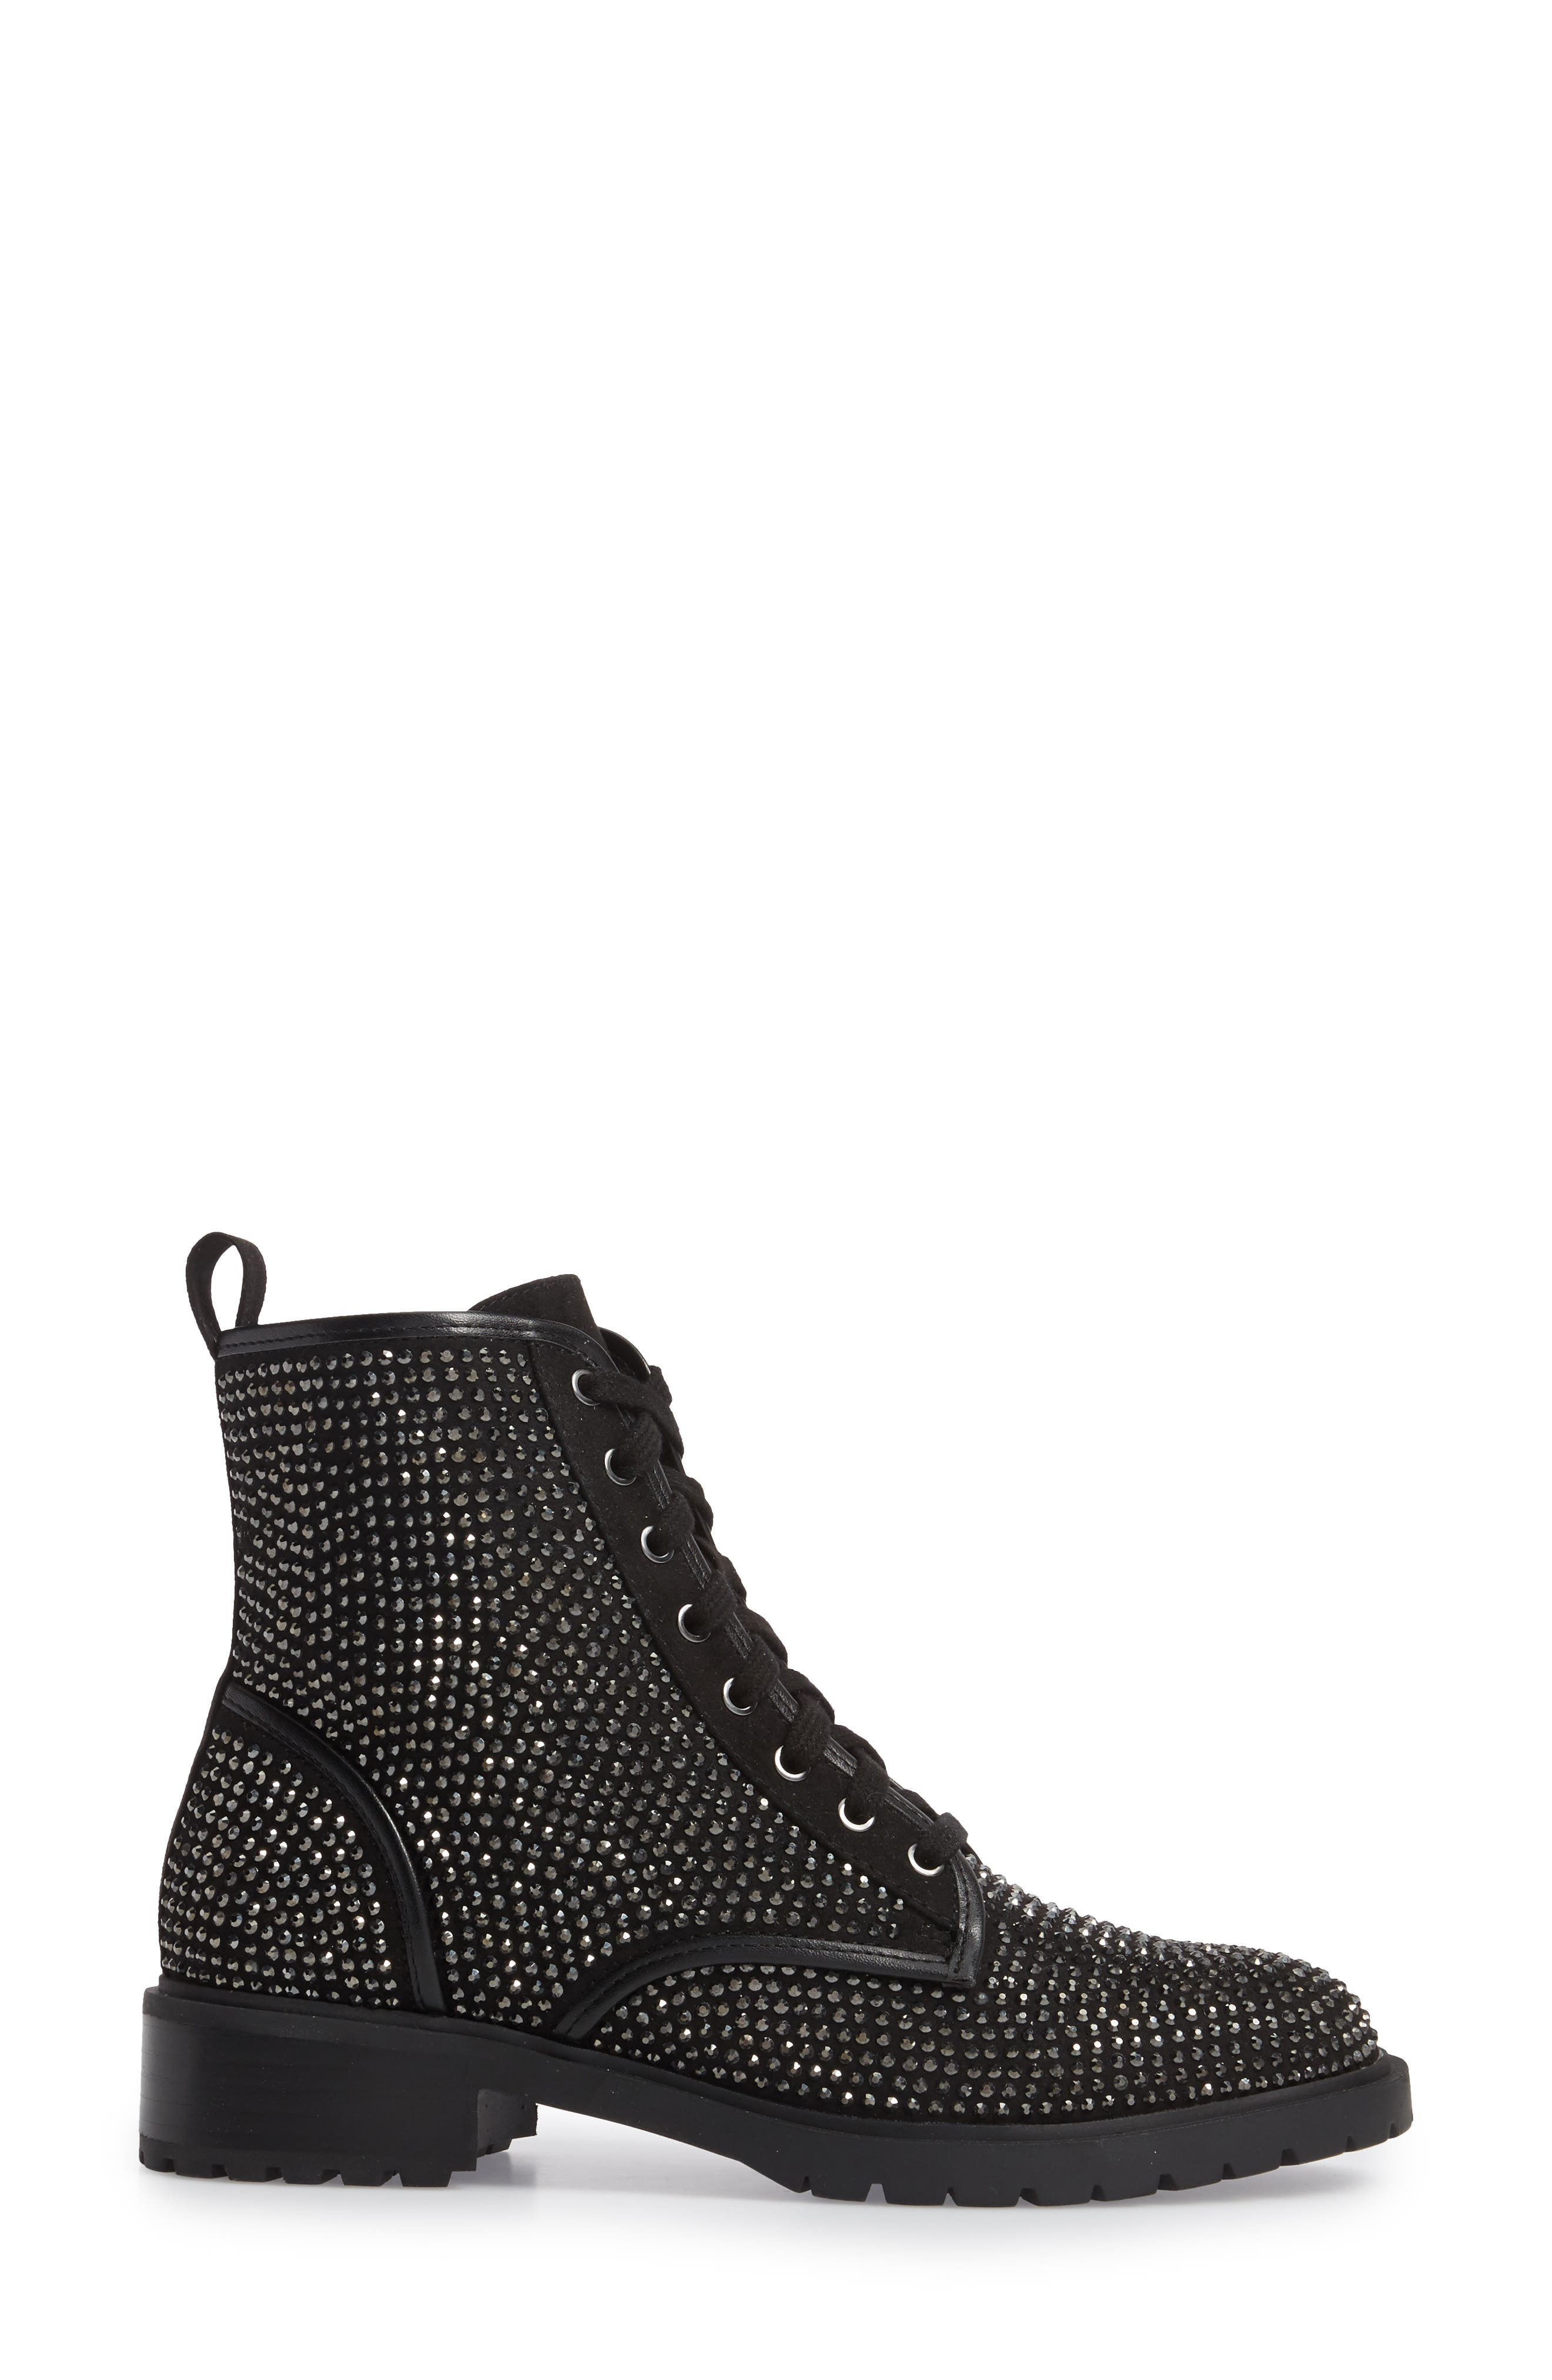 Ozzy Embellished Boot,                             Alternate thumbnail 3, color,                             Black Multi Suede